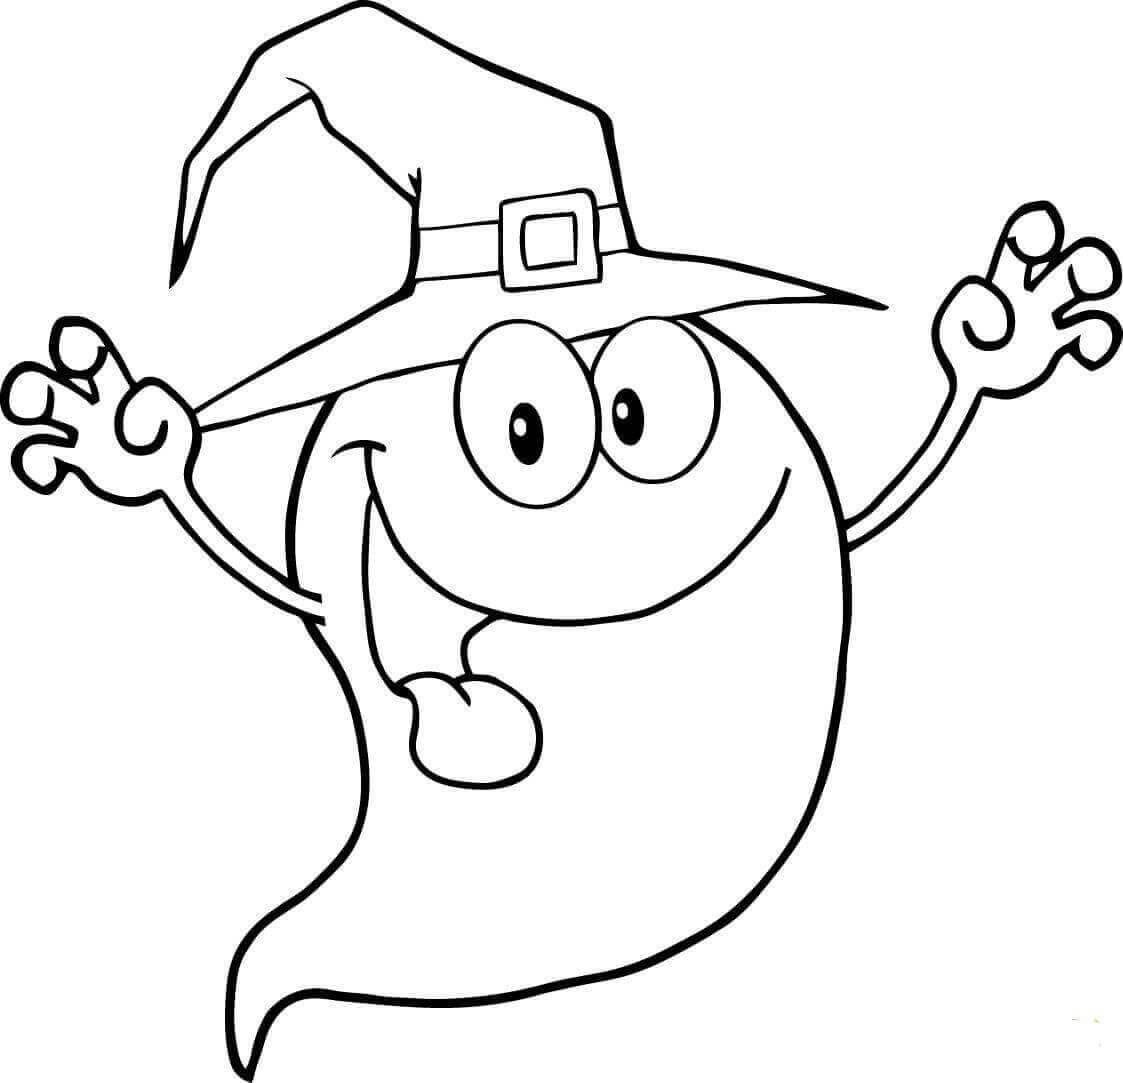 coloring ghost images big ghost coloring page coloring book images coloring ghost